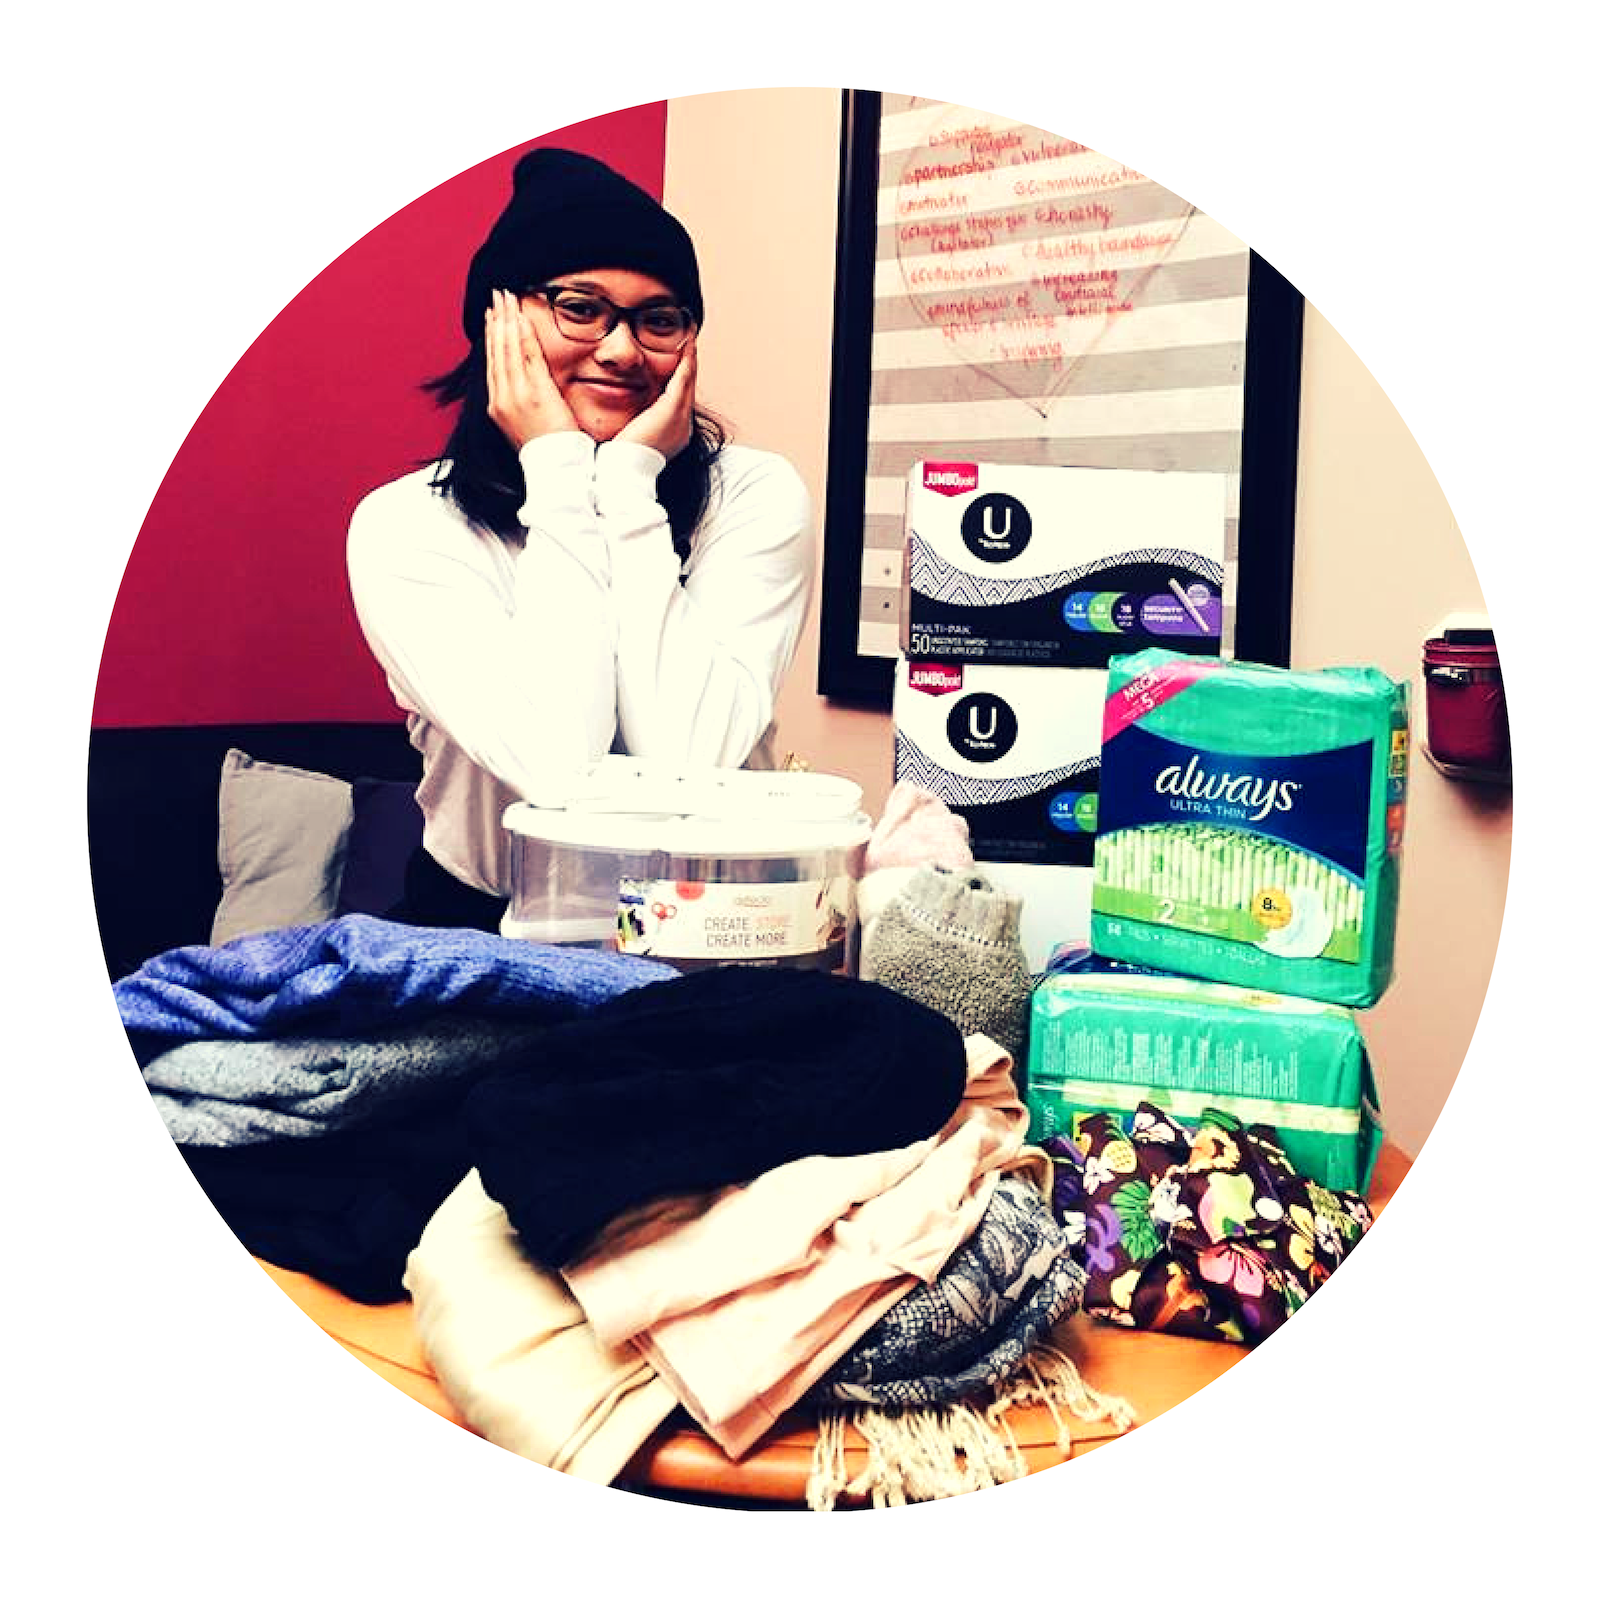 A staff member smiling above a recent box of donations of menstruation pads, tampons, clothing, and more!